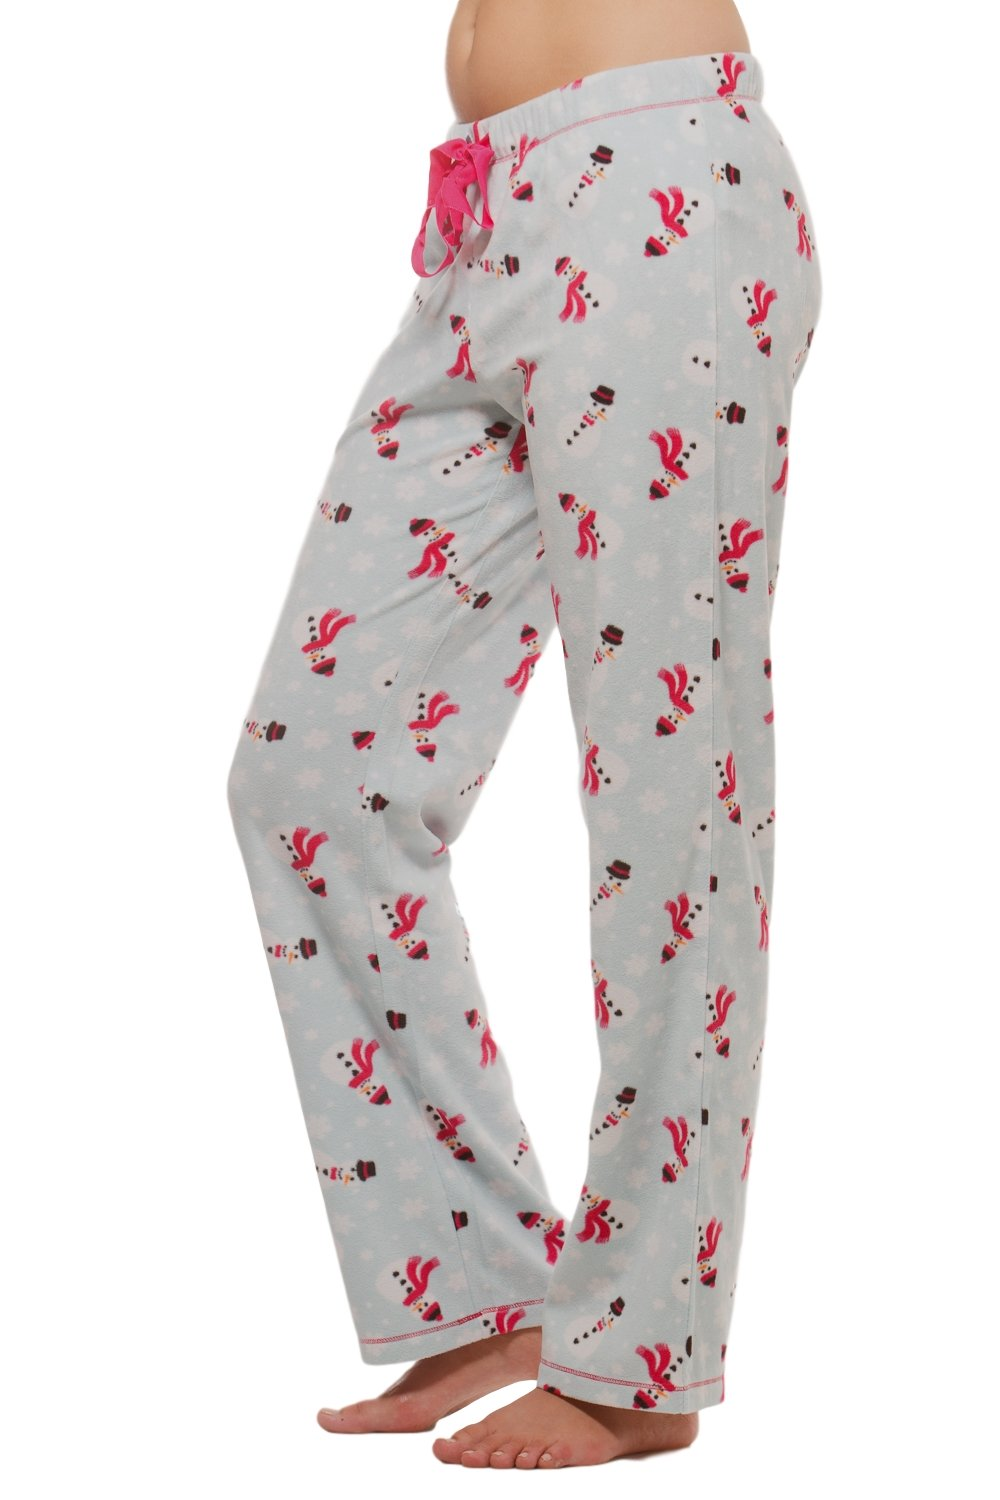 7aafe5d25381 Best Rated in Women s Pajama Bottoms   Helpful Customer Reviews ...